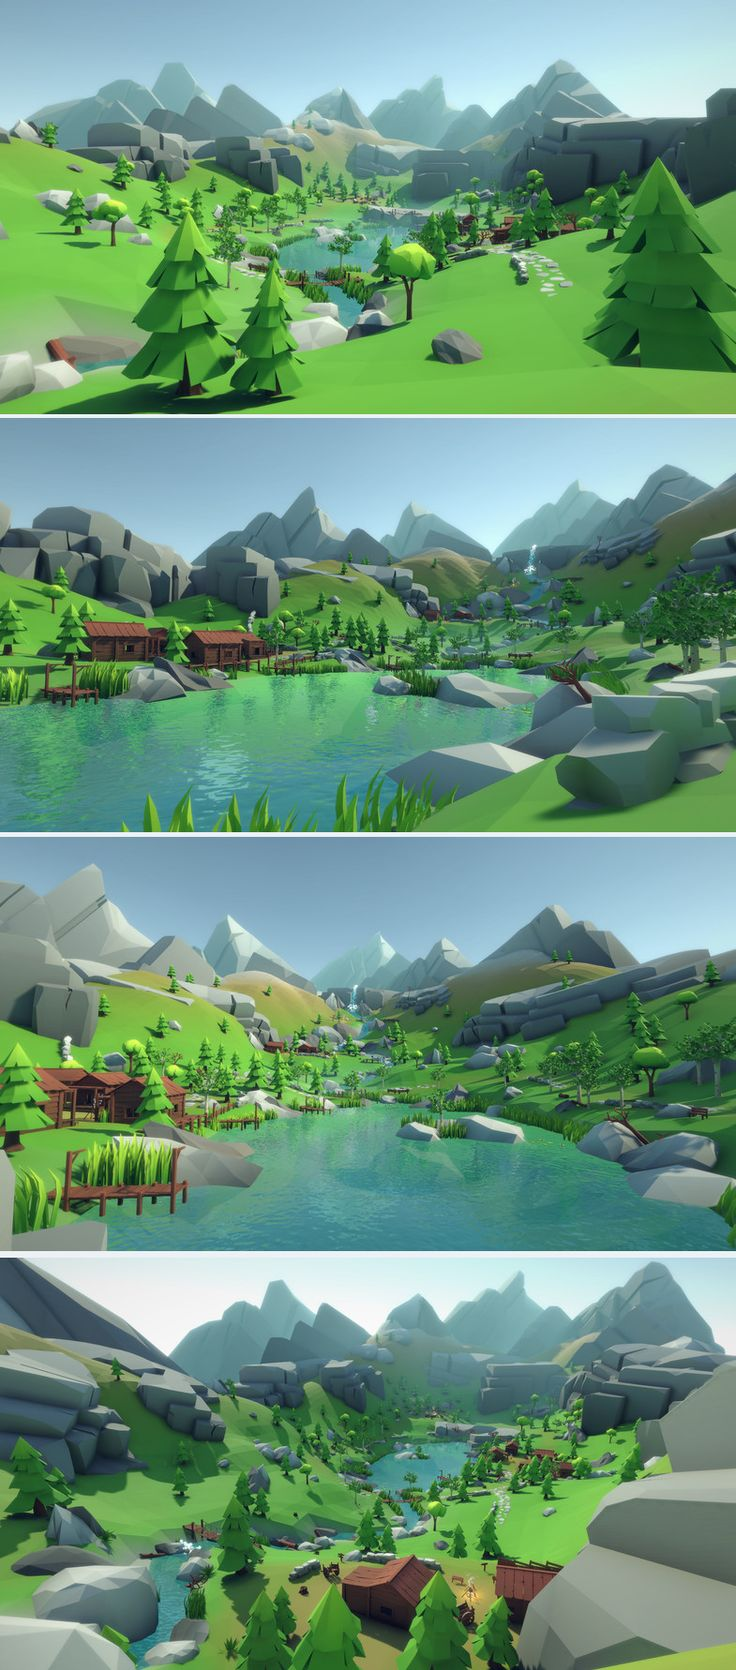 Lowpoly Style Alpine Woodlands Environment Build your own Mountain or Woodland levels and landscapes with this asset pack! A demoscene is also included. The pack contains a lot of assets: Plants, Rocks, Mountains, Trees, Buildings, Camps & Tents, Walls, Particle Effects und much more. Performance: Everything shares one material and one texture, so everything can be batched together to save draw calls. Unity Game Asset Store